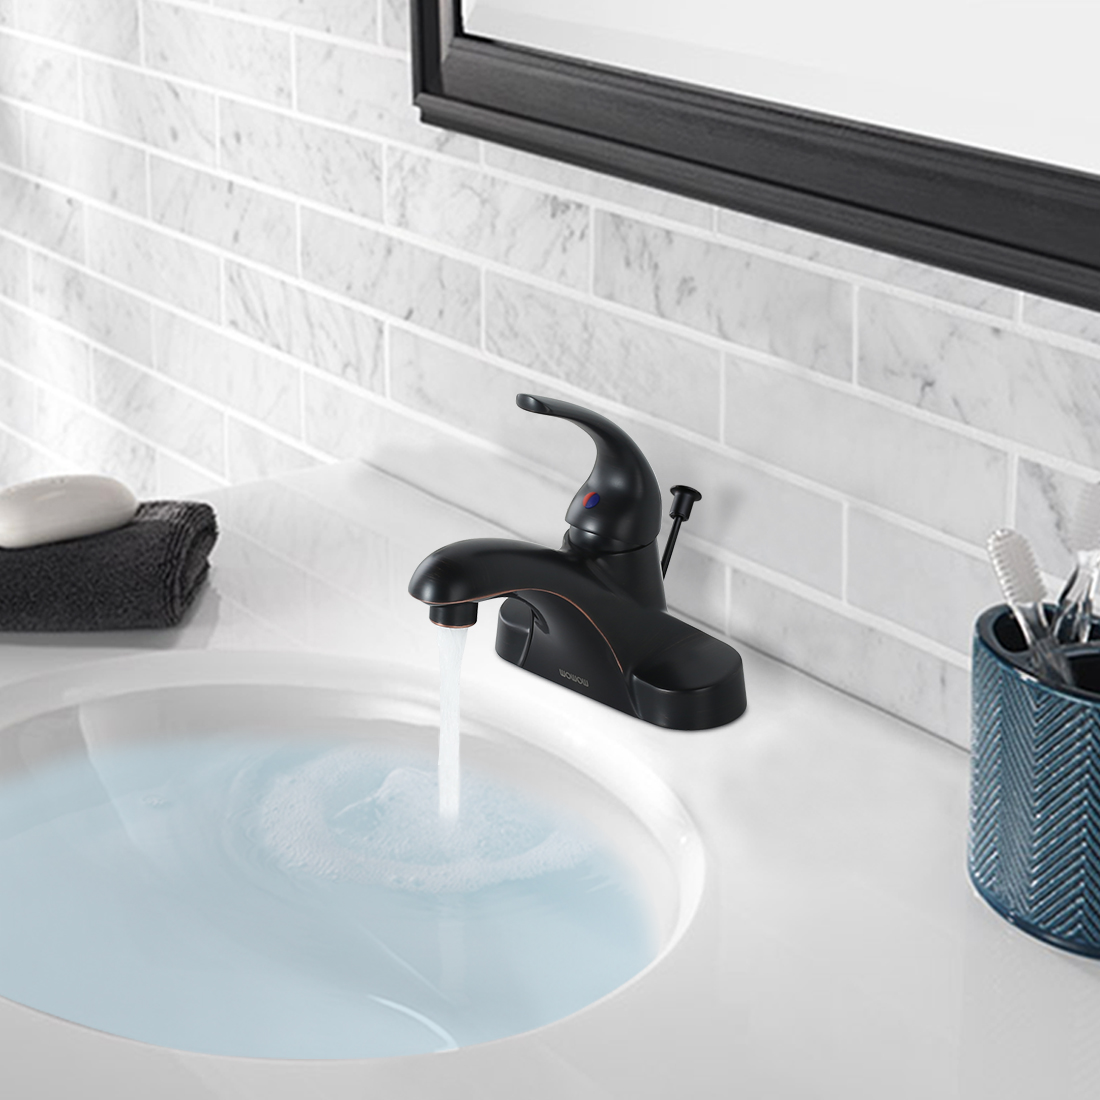 Common problems and solutions for leaky faucets